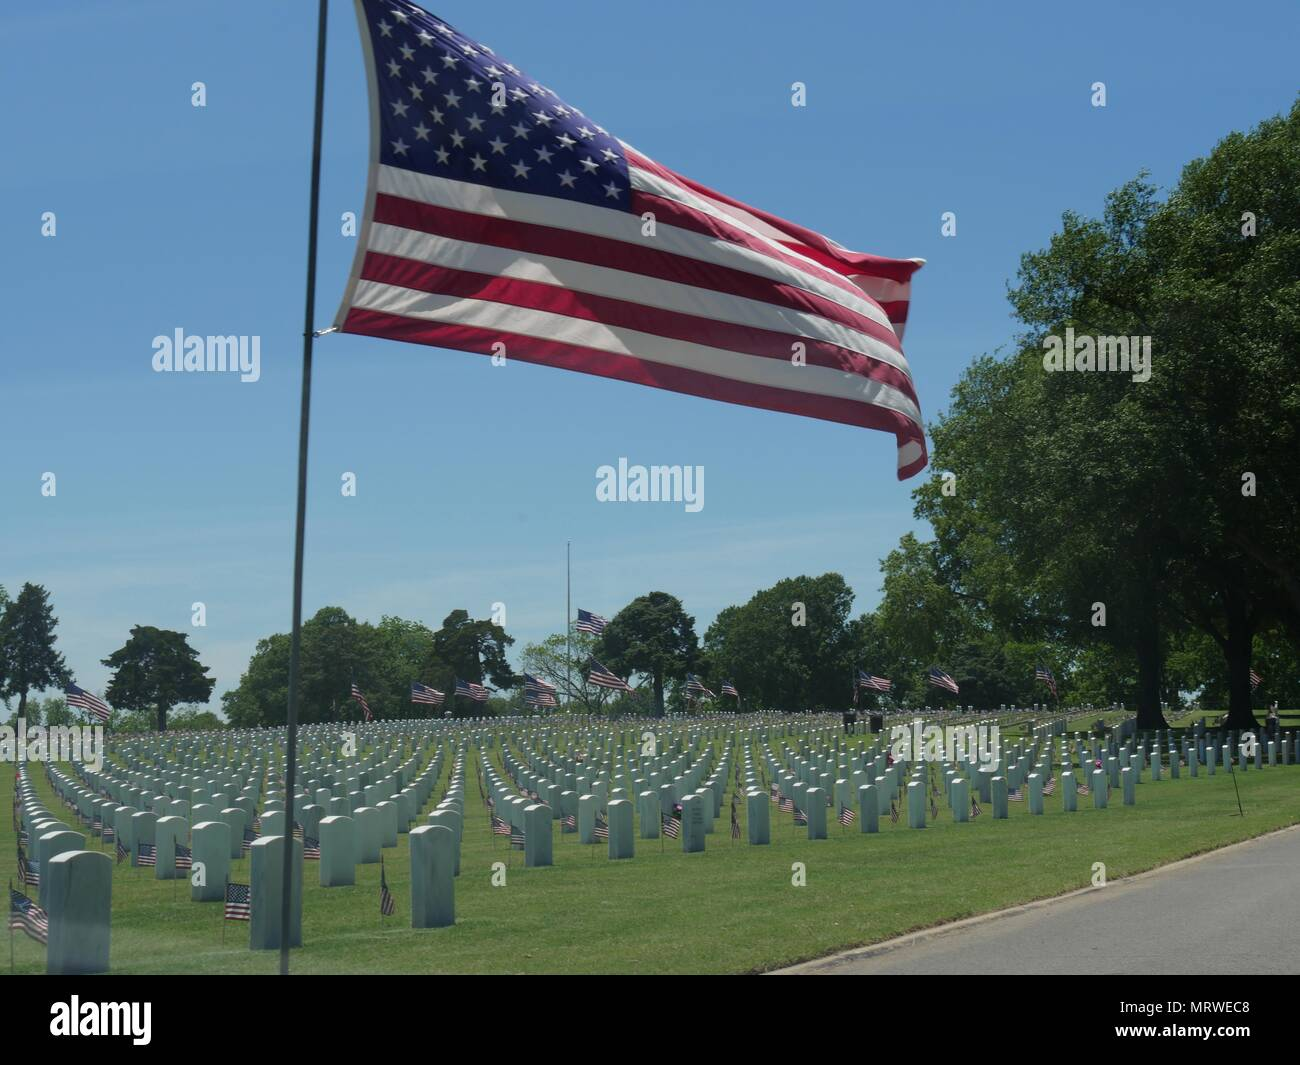 A big United States flag at half staff and small US flags wave in the wind at the Fort Gibson National Cemetery in Muskogee, Oklahoma Stock Photo